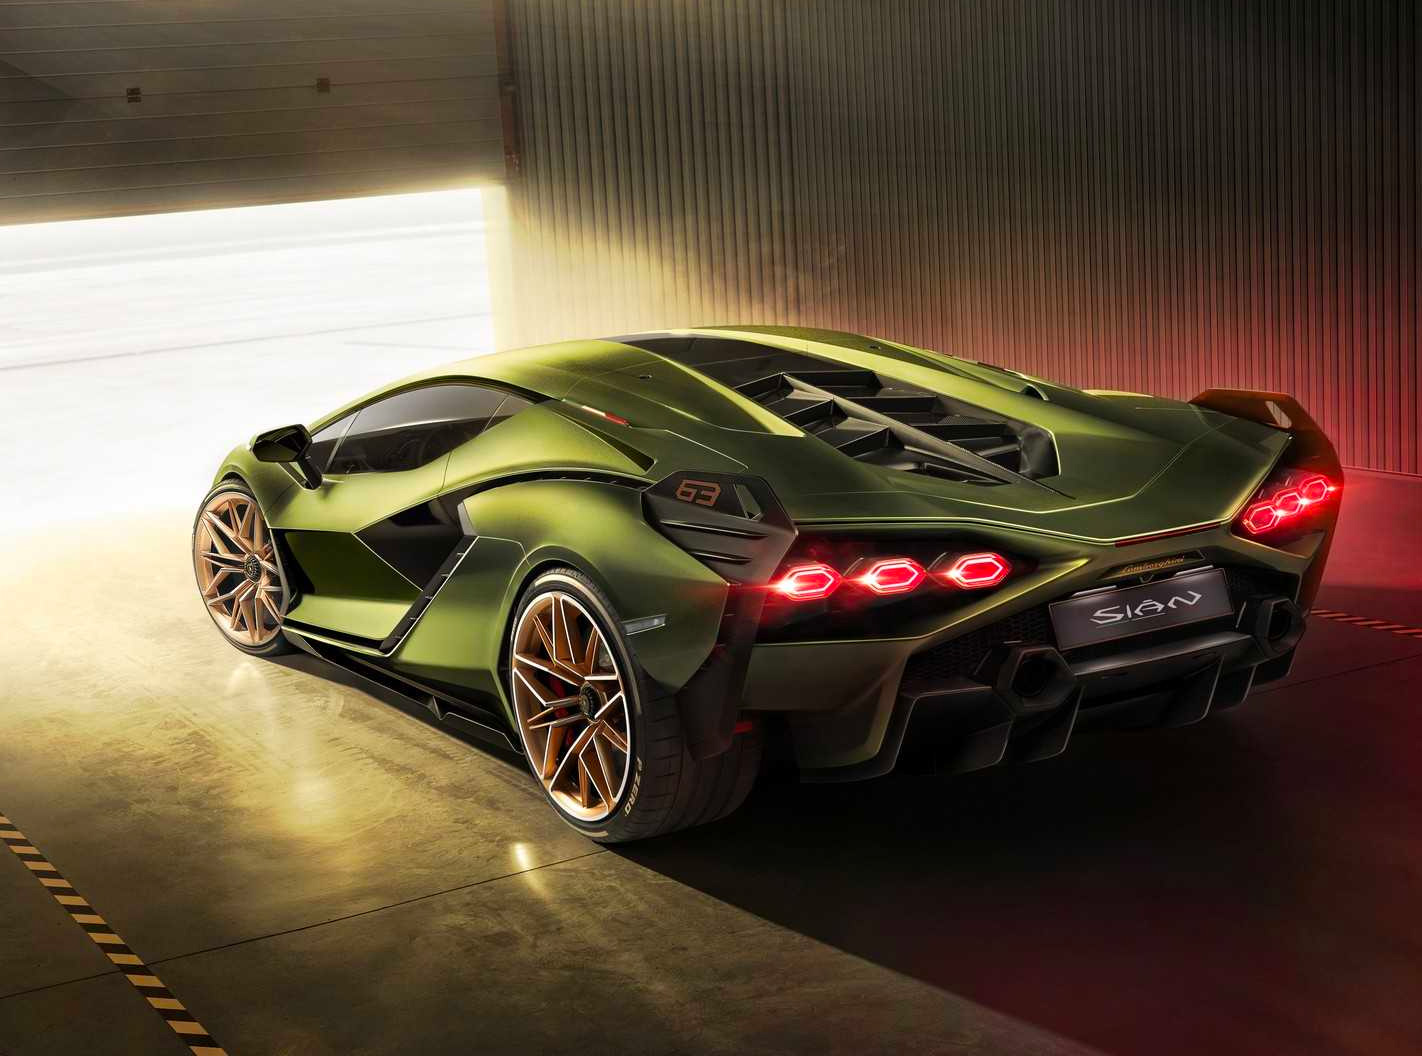 The Fastest Lamborghini Ever is a Hybrid at werd.com